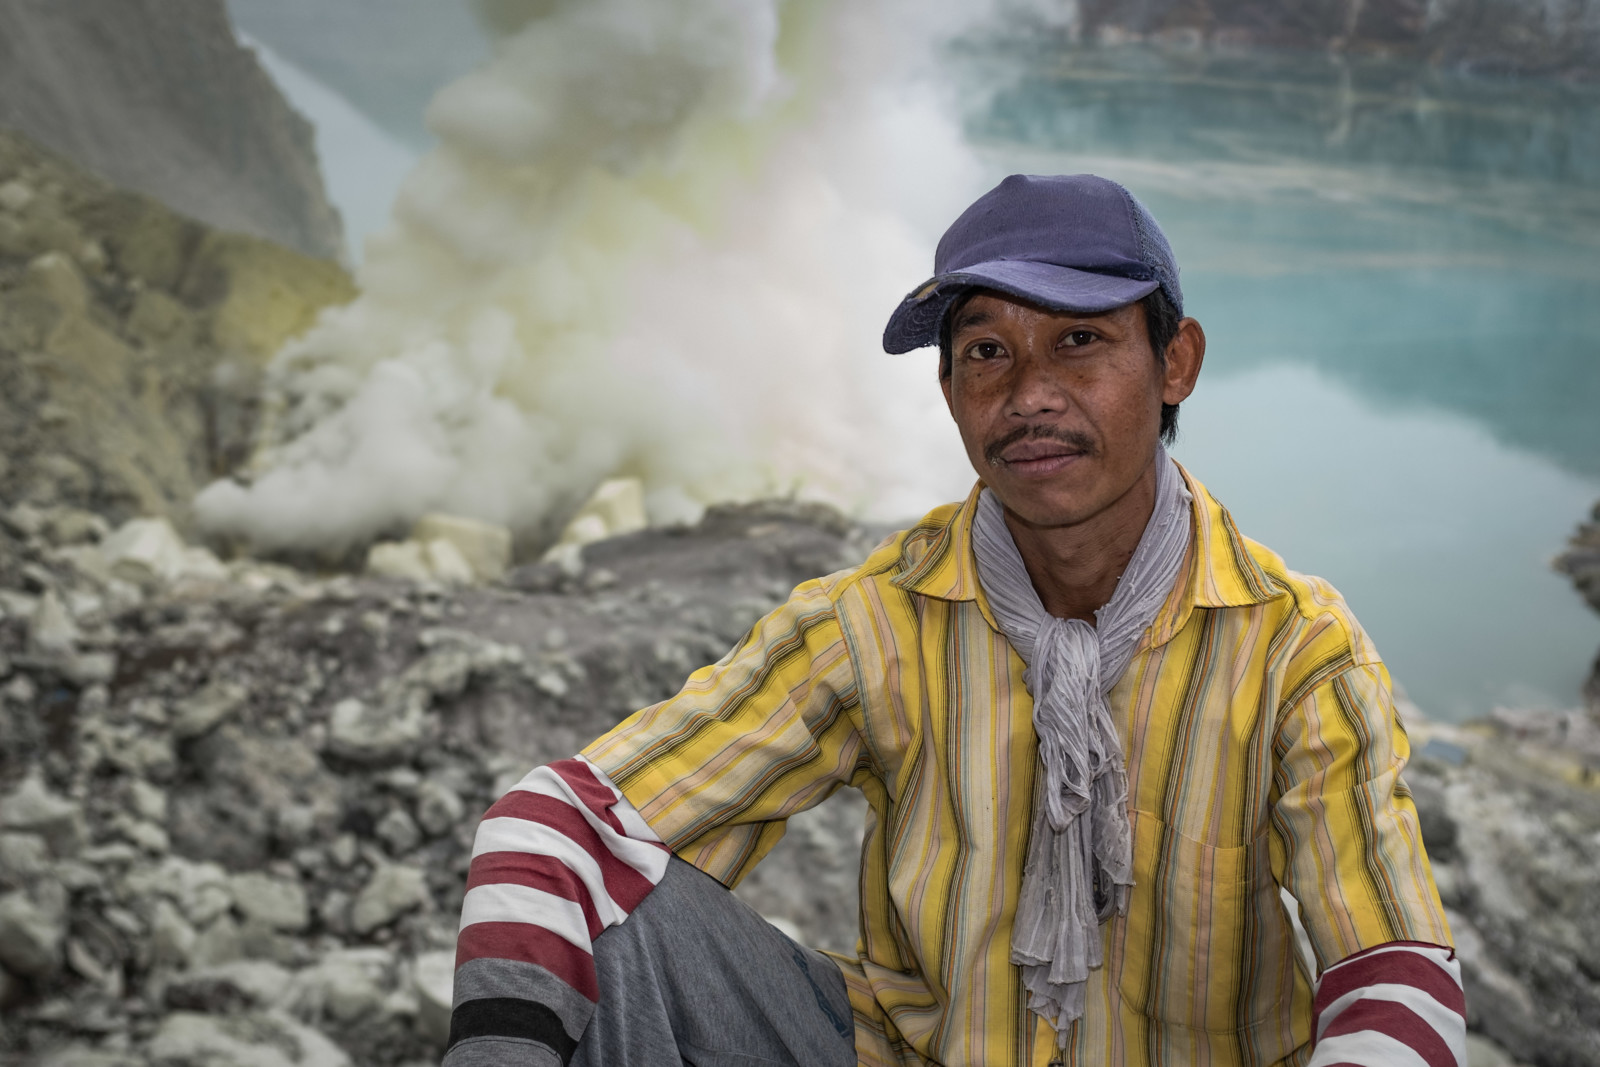 Documentary Photography - Portrait of a Sulfur Miner